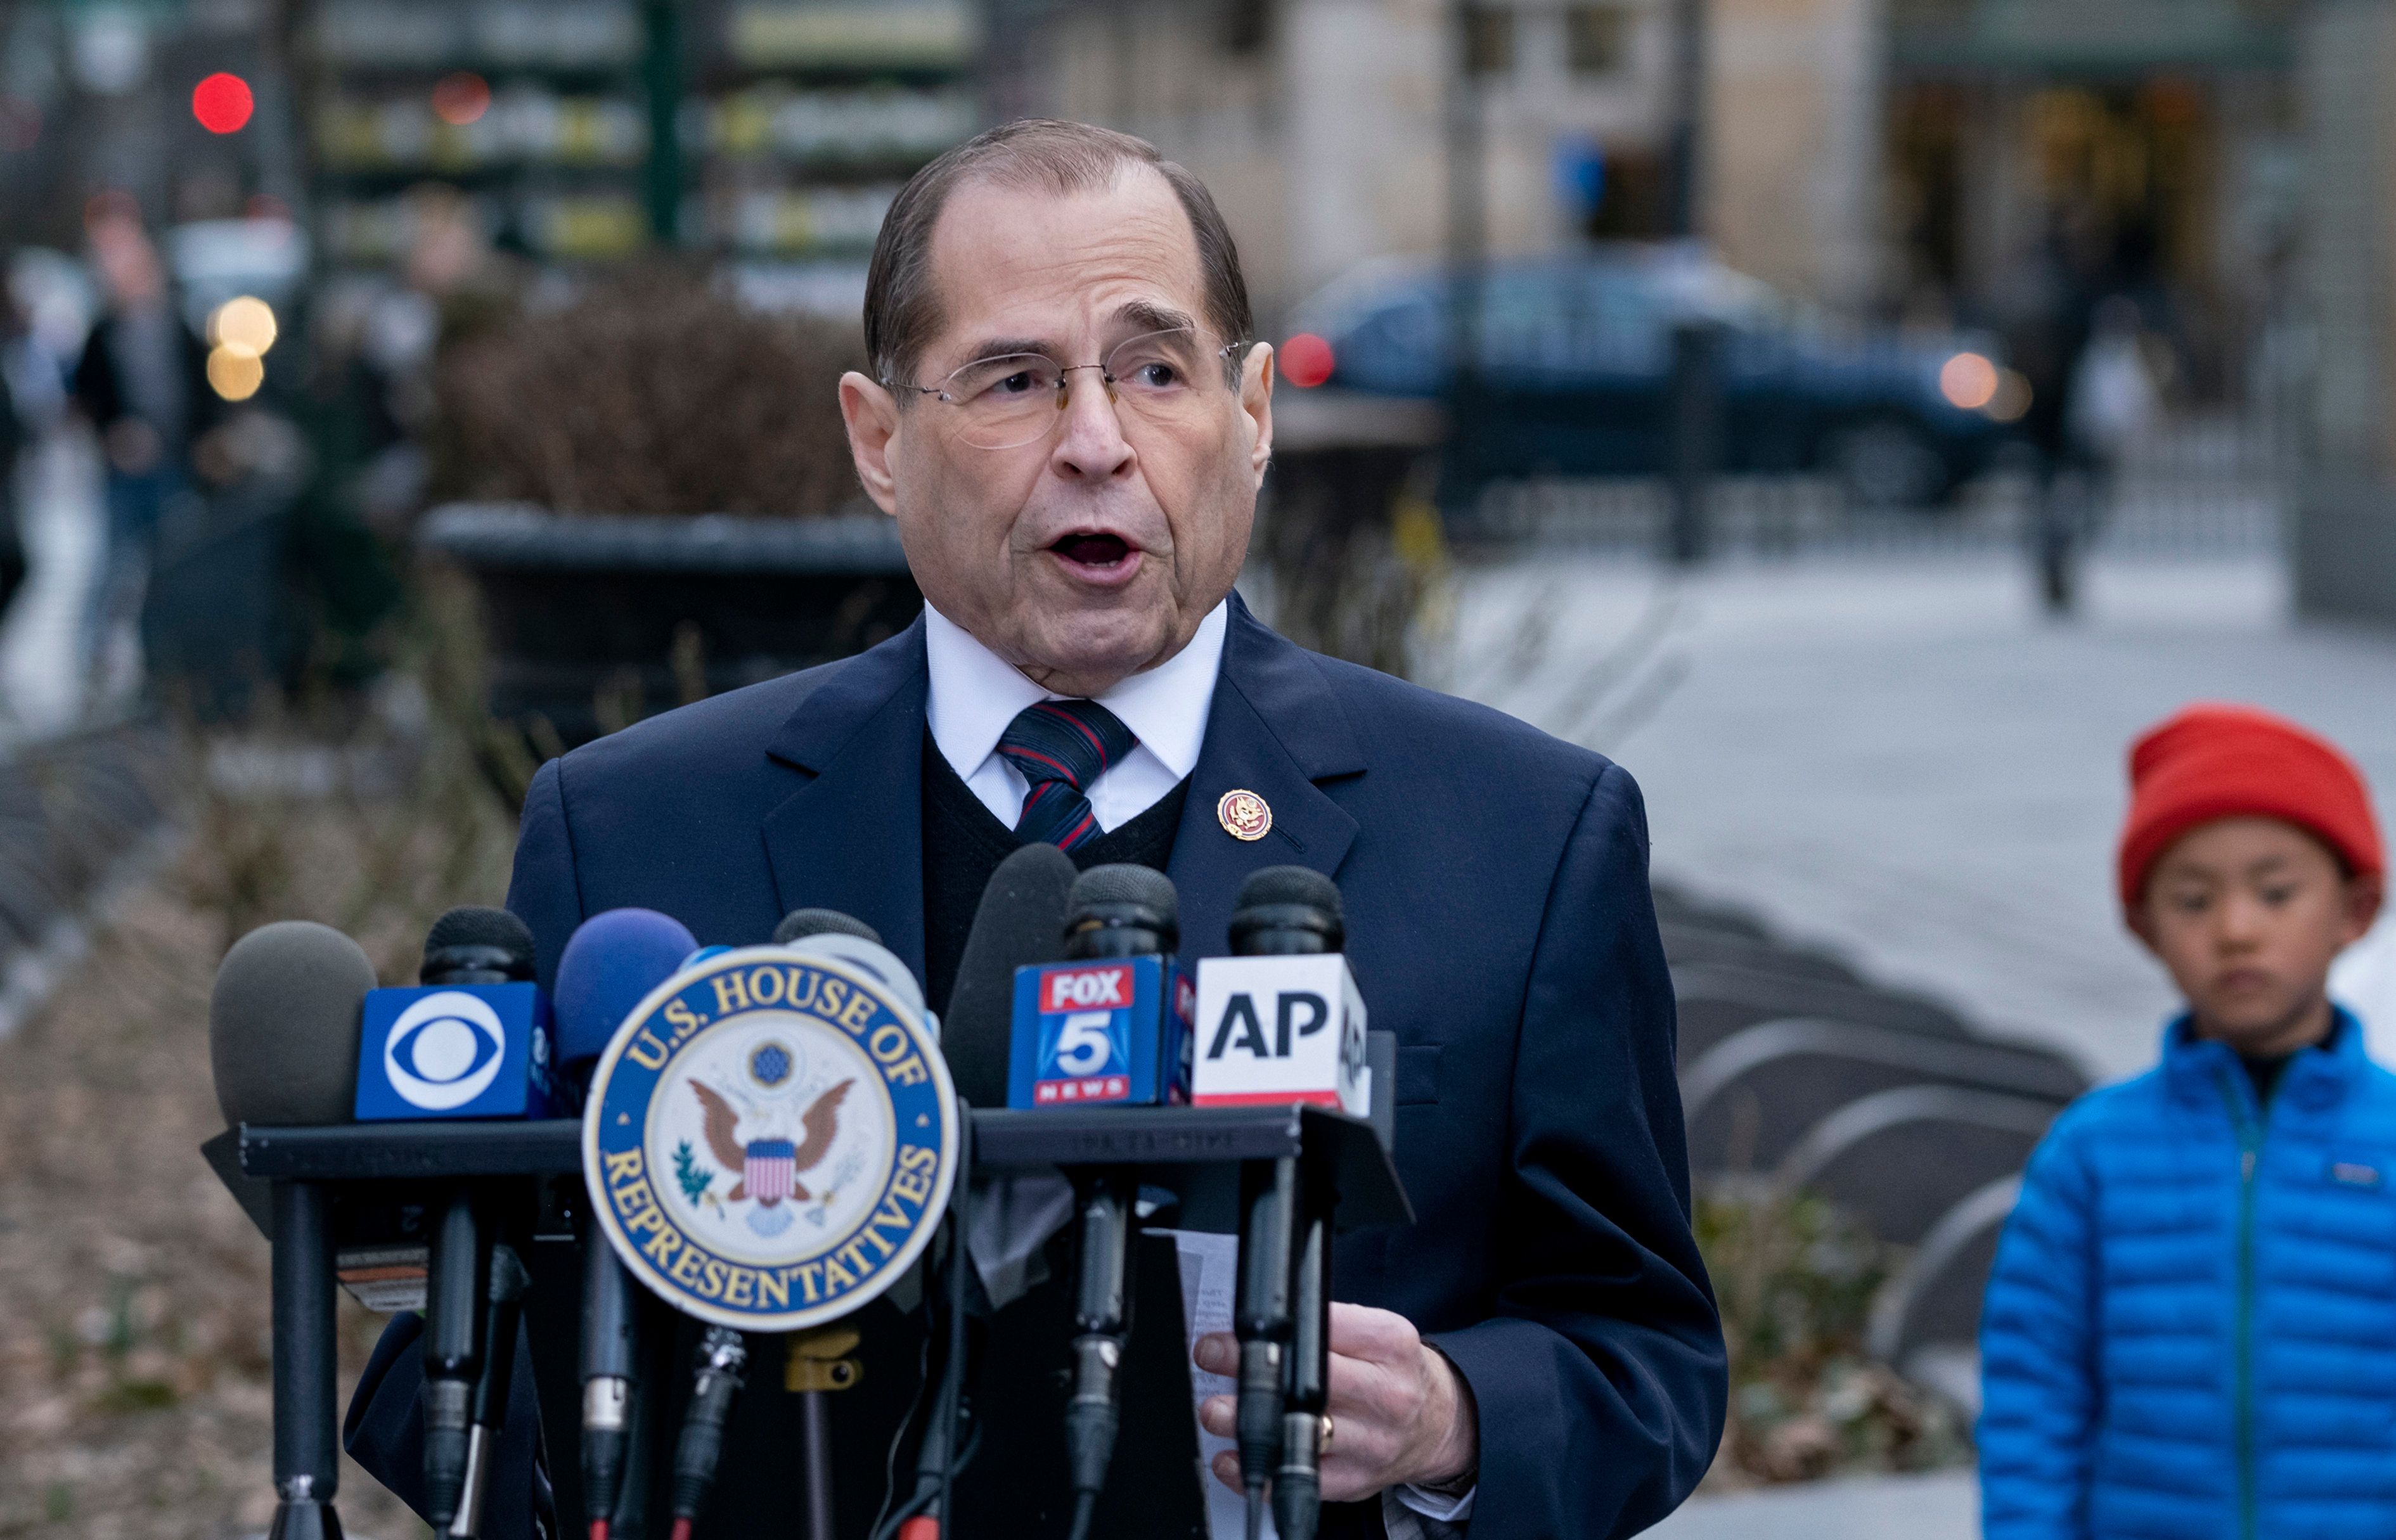 House Judiciary Committee Chairman Jerrold Nadler, D-N.Y, speaks during a news conference at a subway station in the Upper West Side neighborhood of New York Sunday, March 24, 2019, in the wake of Attorney General William Barr's Summary of the Mueller Report. (AP Photo/Craig Ruttle)